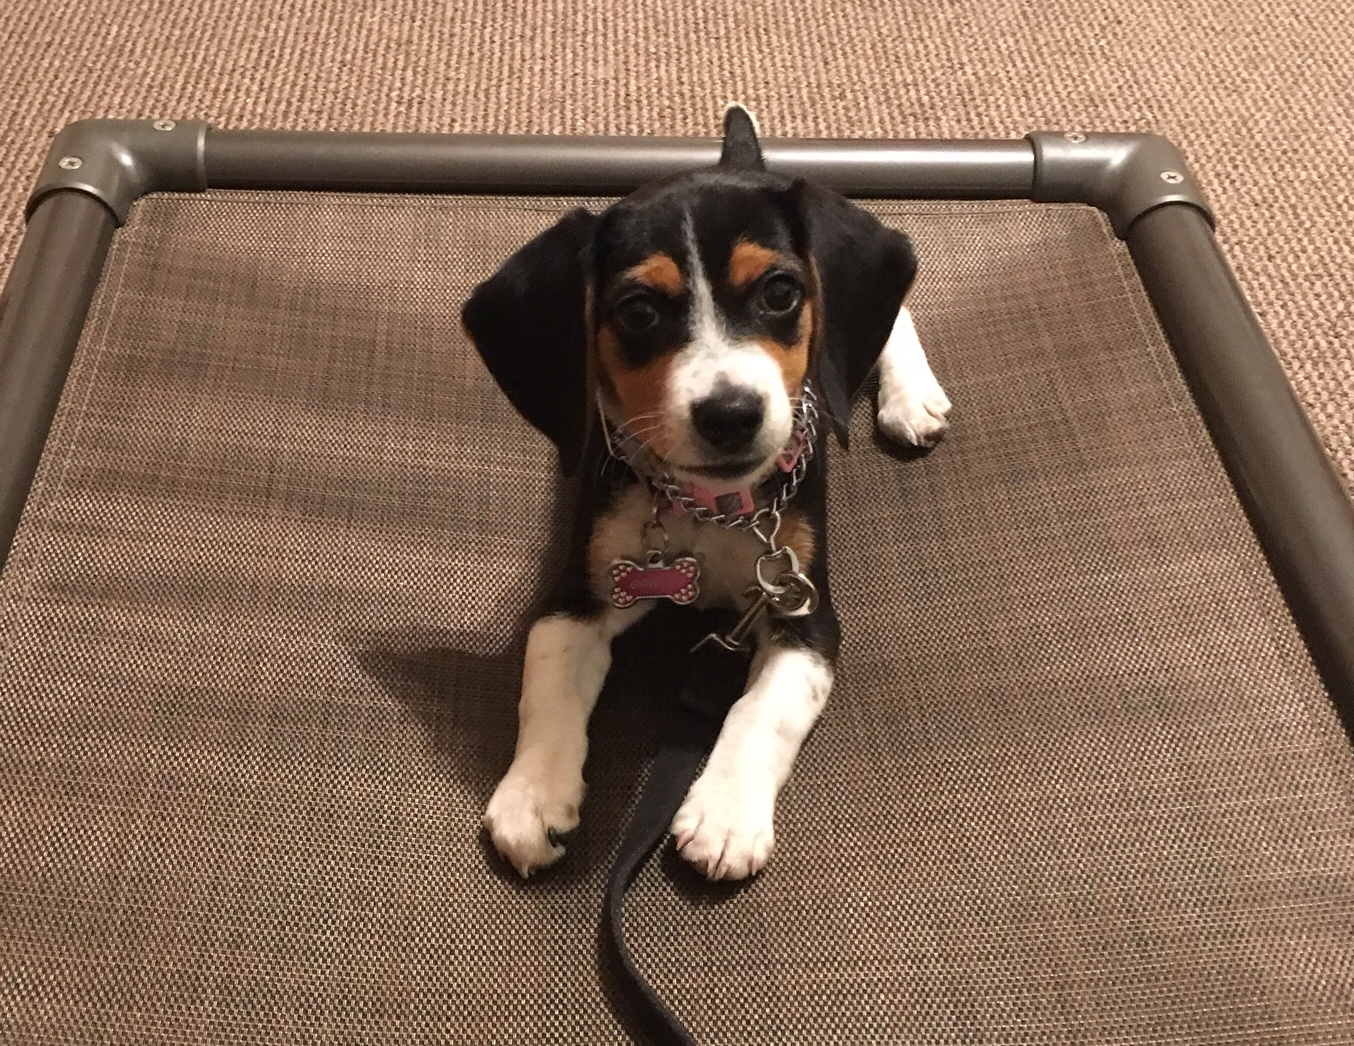 Grace - I started my 2.5 month old beagle to Sue in desperate need of help back in April. We were 100% clueless whenever it came to having a puppy. So we decided on Sue's 3 week Stay and Train program. Grace, my beagle, came back and we were super proud of what she had learned. She's now doing great with crate training, doing MUCH better with potty training, waits to get out of her crate when we open it, she waits to be fed we make her sit and wait until we command her to eat, she's also still doing well with her place… Sue is still taking Grace in and boarding her as we travel and works with her while we're gone and Grace is with her. We're happy with this choice we chose for Grace. She's a great dog and can't wait to see how she progresses the next few months. Thanks Sue for your help in our time of need and thanks for guiding us in the right direction 🙏Trish Hickman, San Marcos, TX